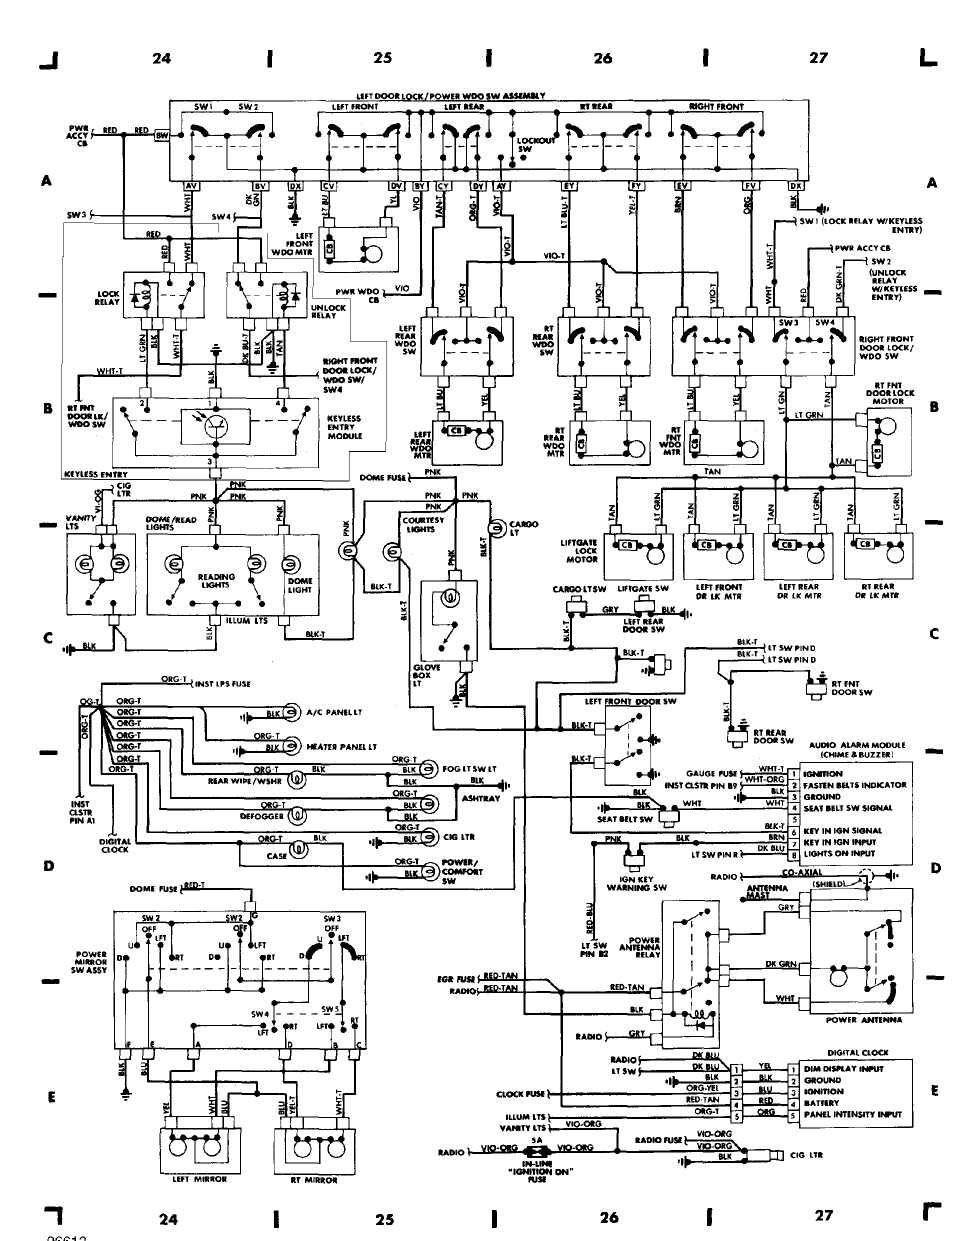 Wiring Diagram For 1988 Jeep Comanche 4 Cylinder